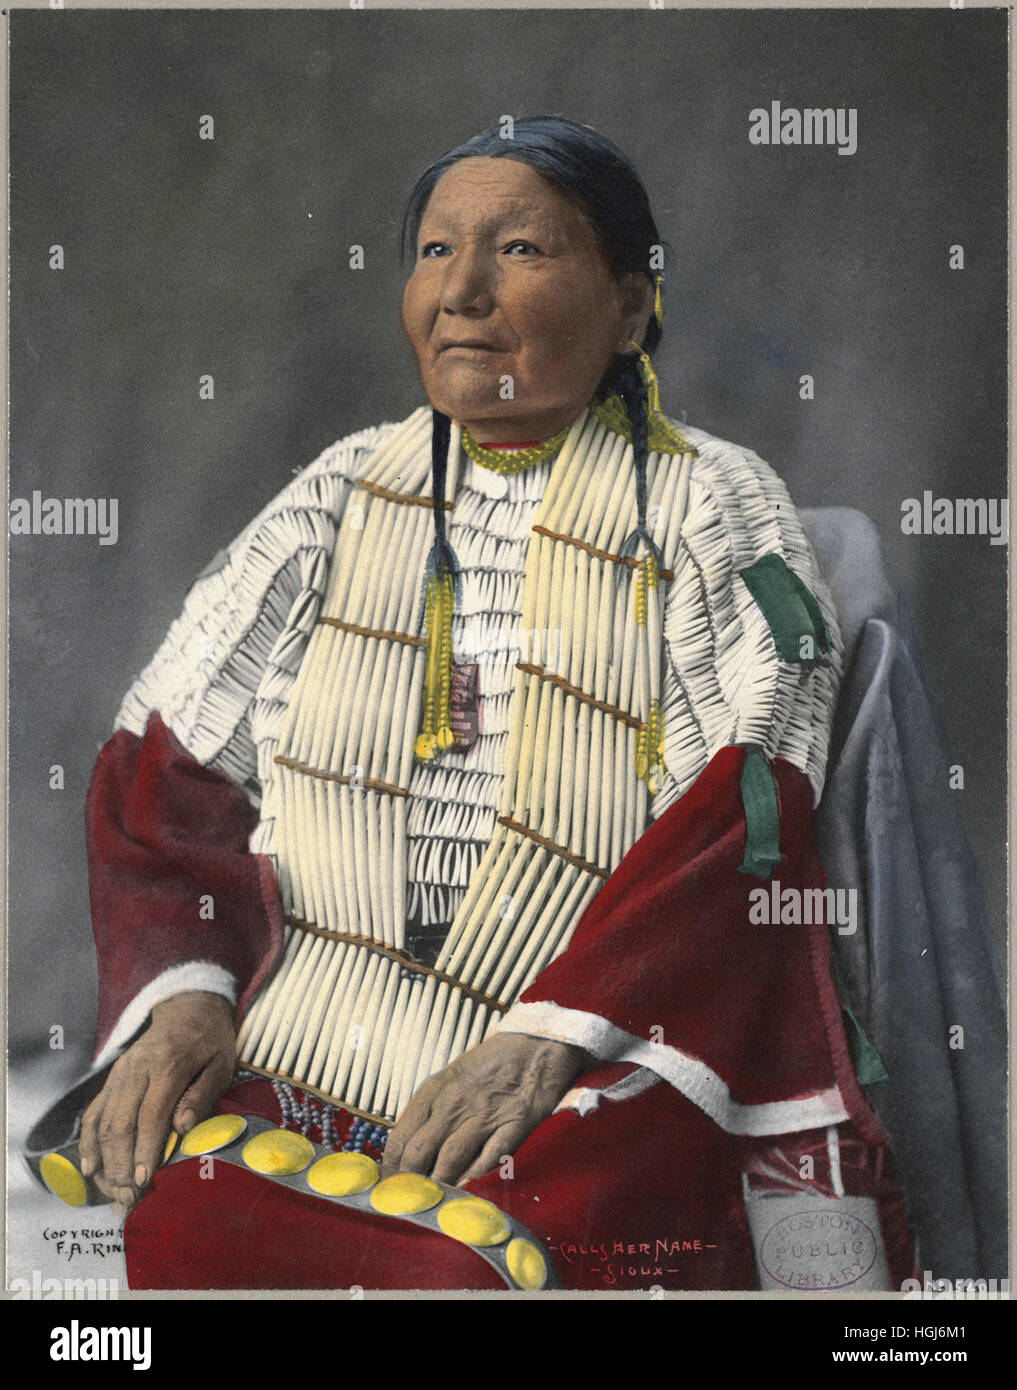 Calls Her Name, Sioux   - 1898 Indian Congress - Photo : Frank A. Rinehart - Stock Image